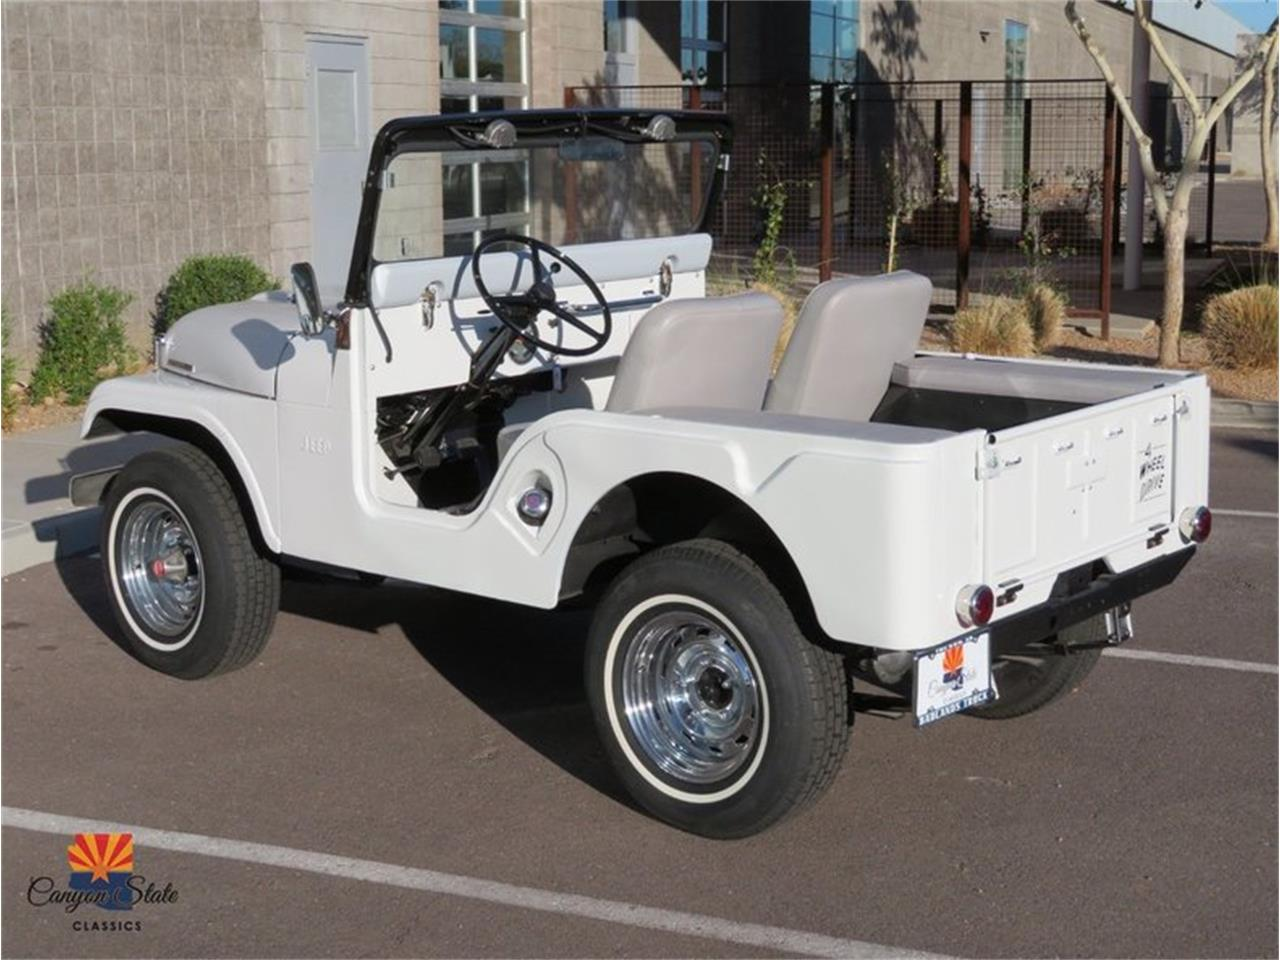 Large Picture of 1965 CJ located in Tempe Arizona - $15,900.00 Offered by Canyon State Classics - PW01